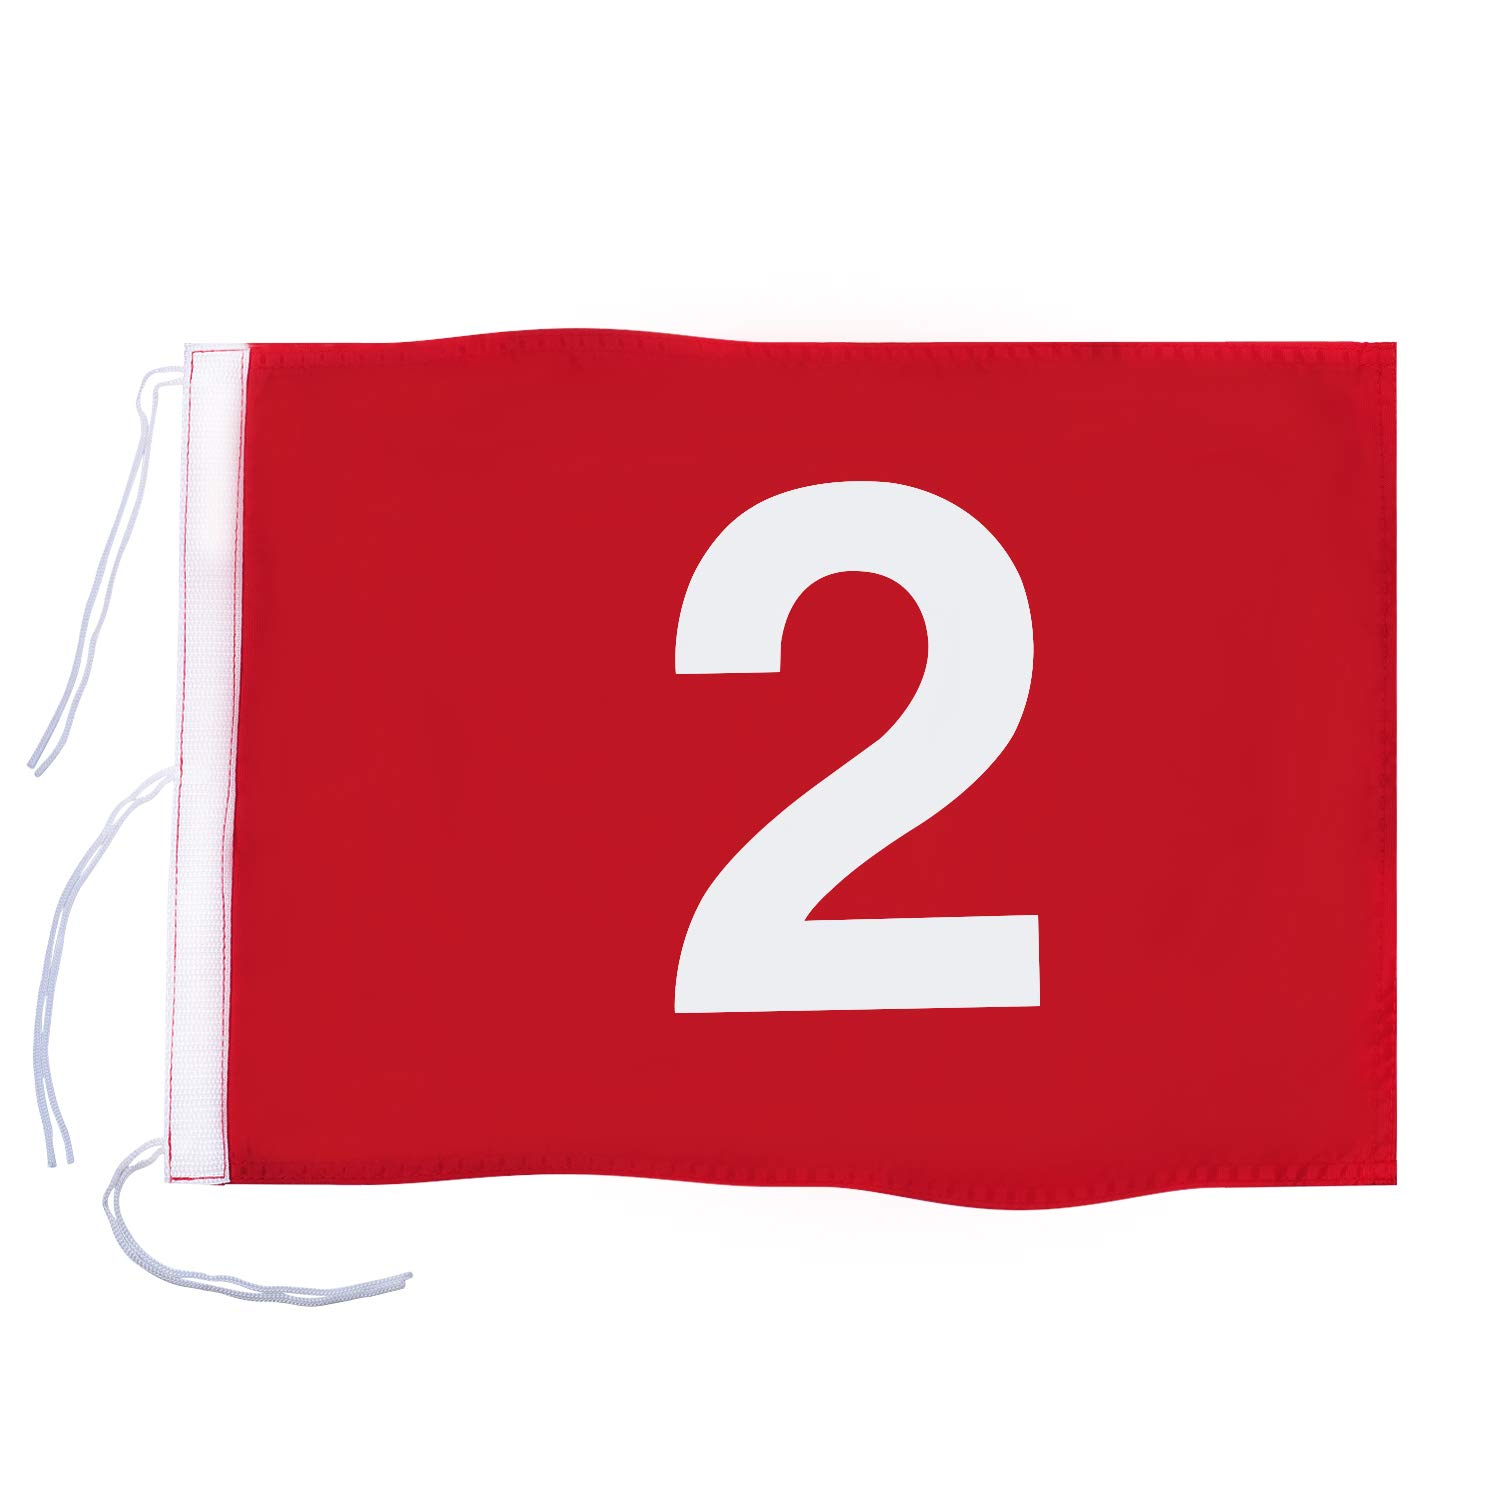 KINGTOP Numbered Golf Flag with Secure Strings, 13'' L x 20'' W, 420D Nylon, Red 2 by KINGTOP